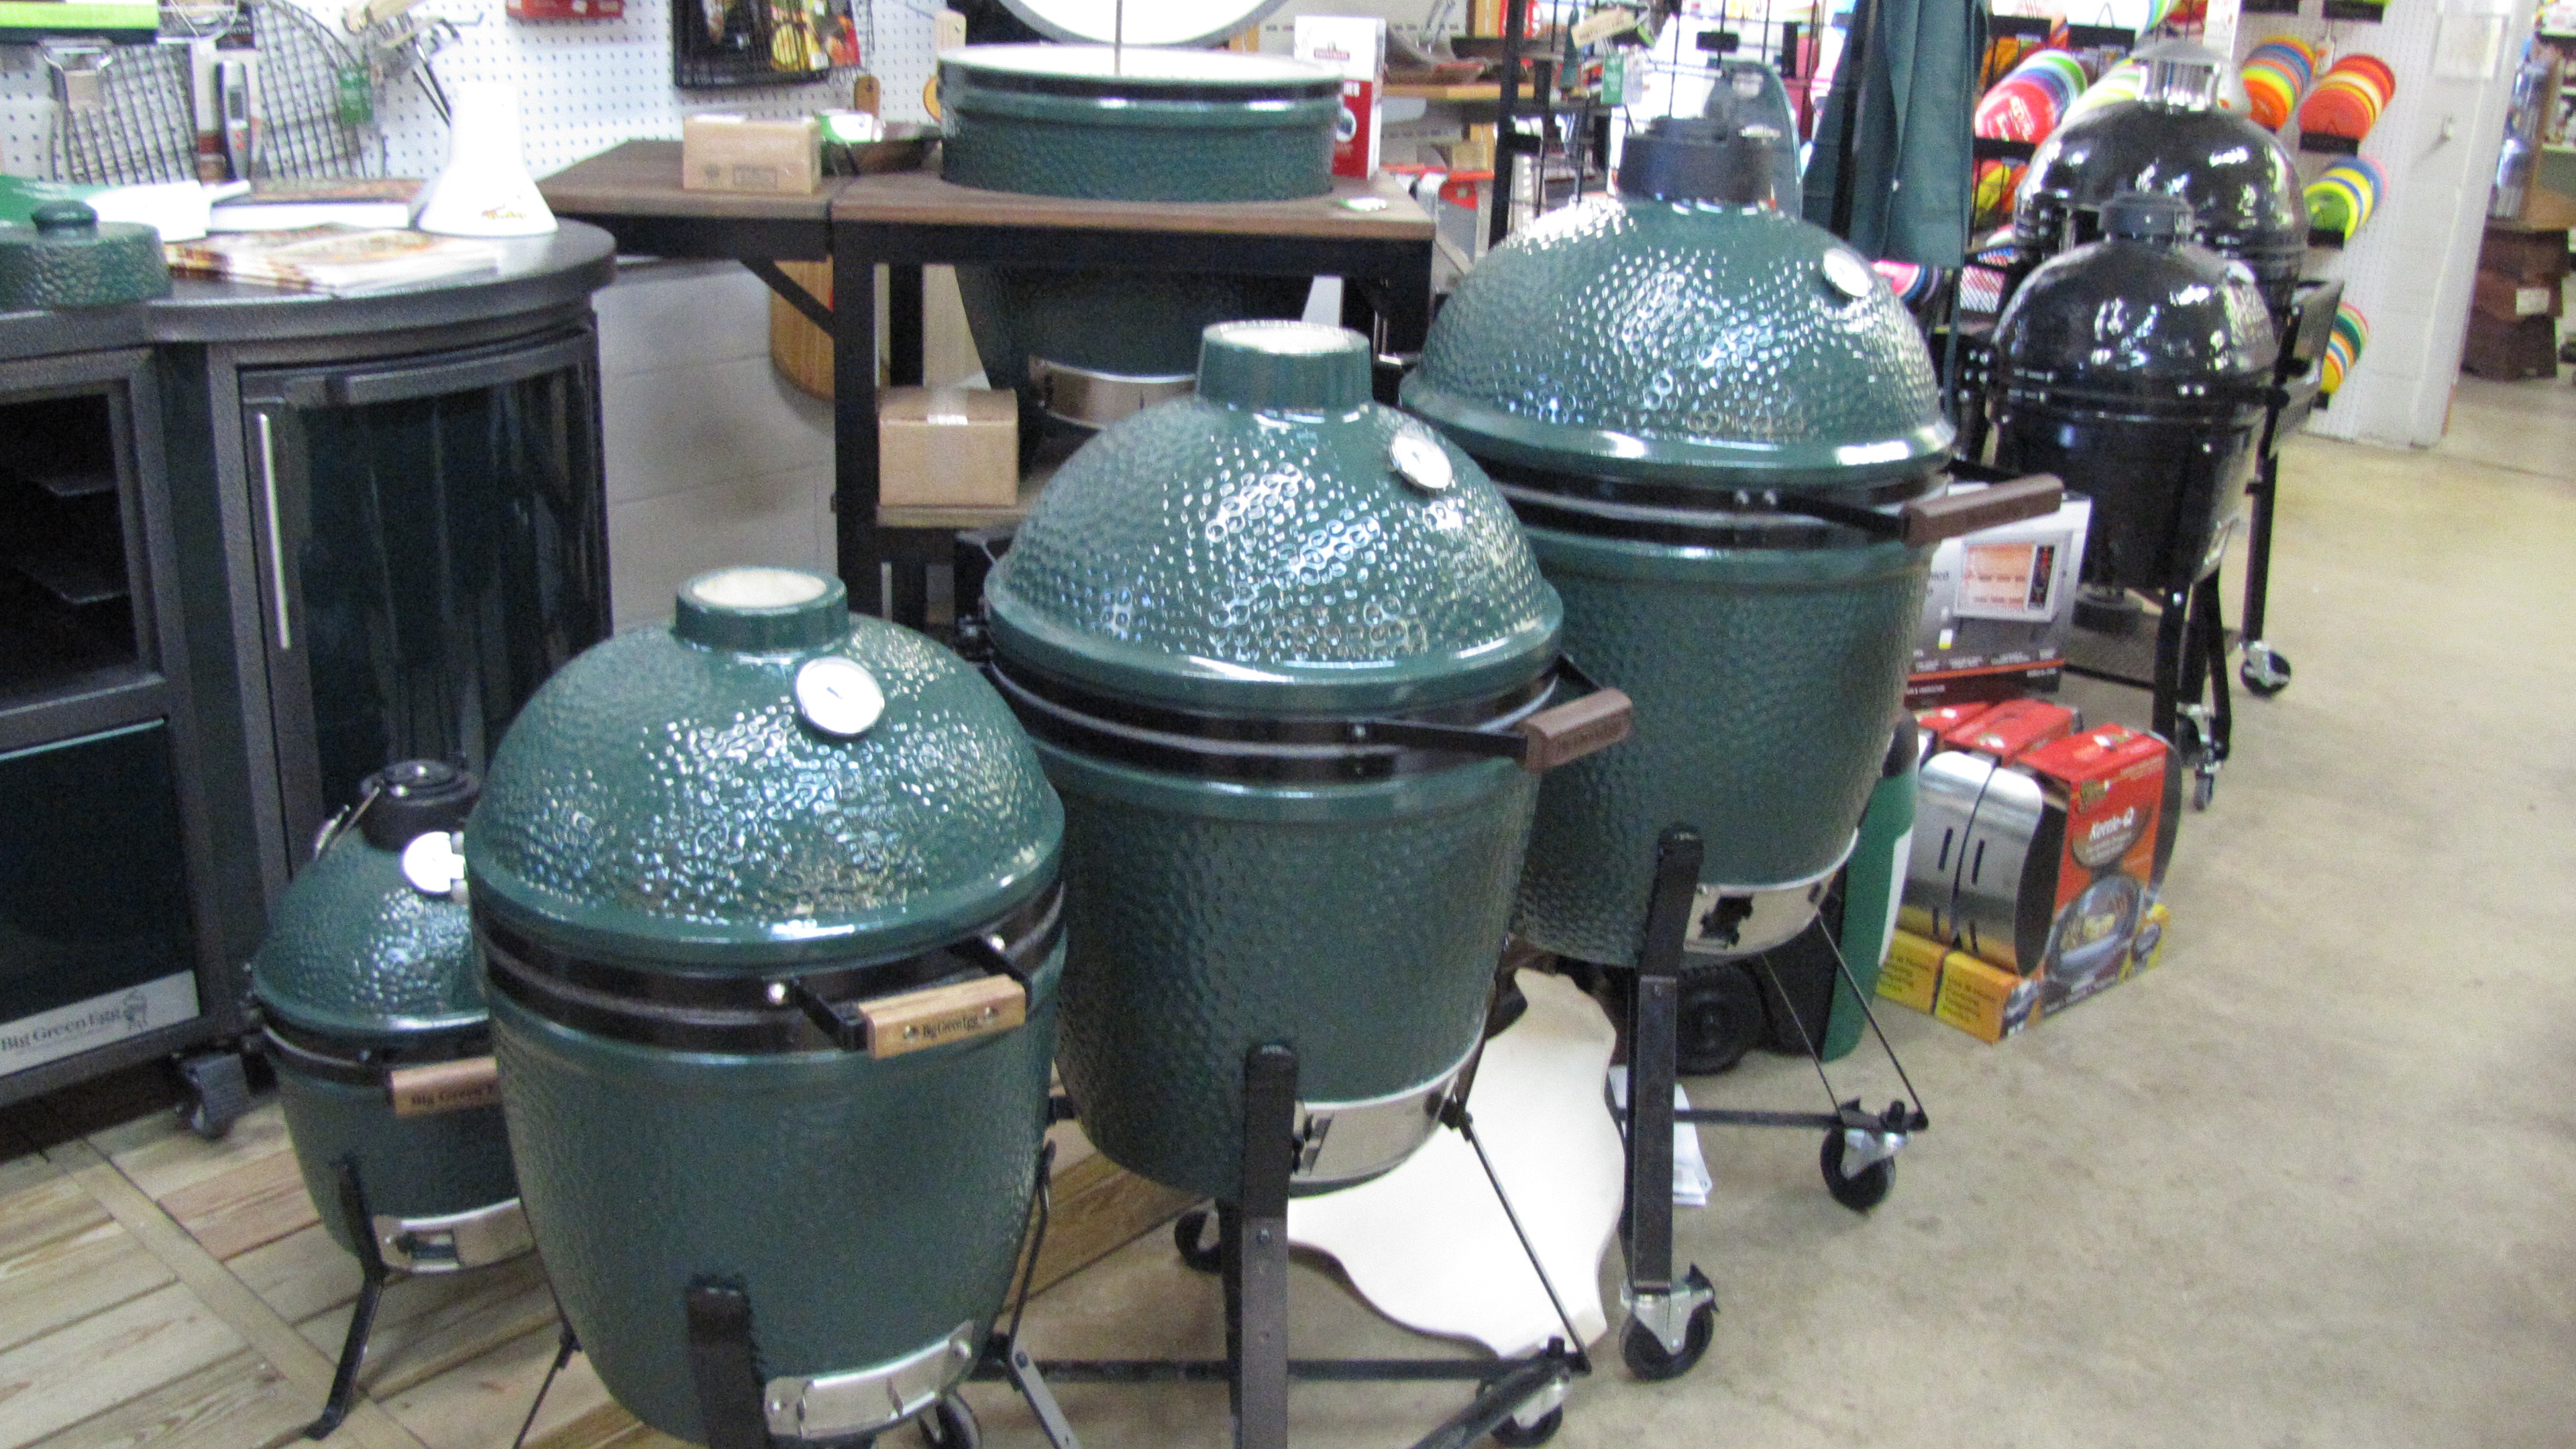 Big Green Egg grill :: Foreman's General Store